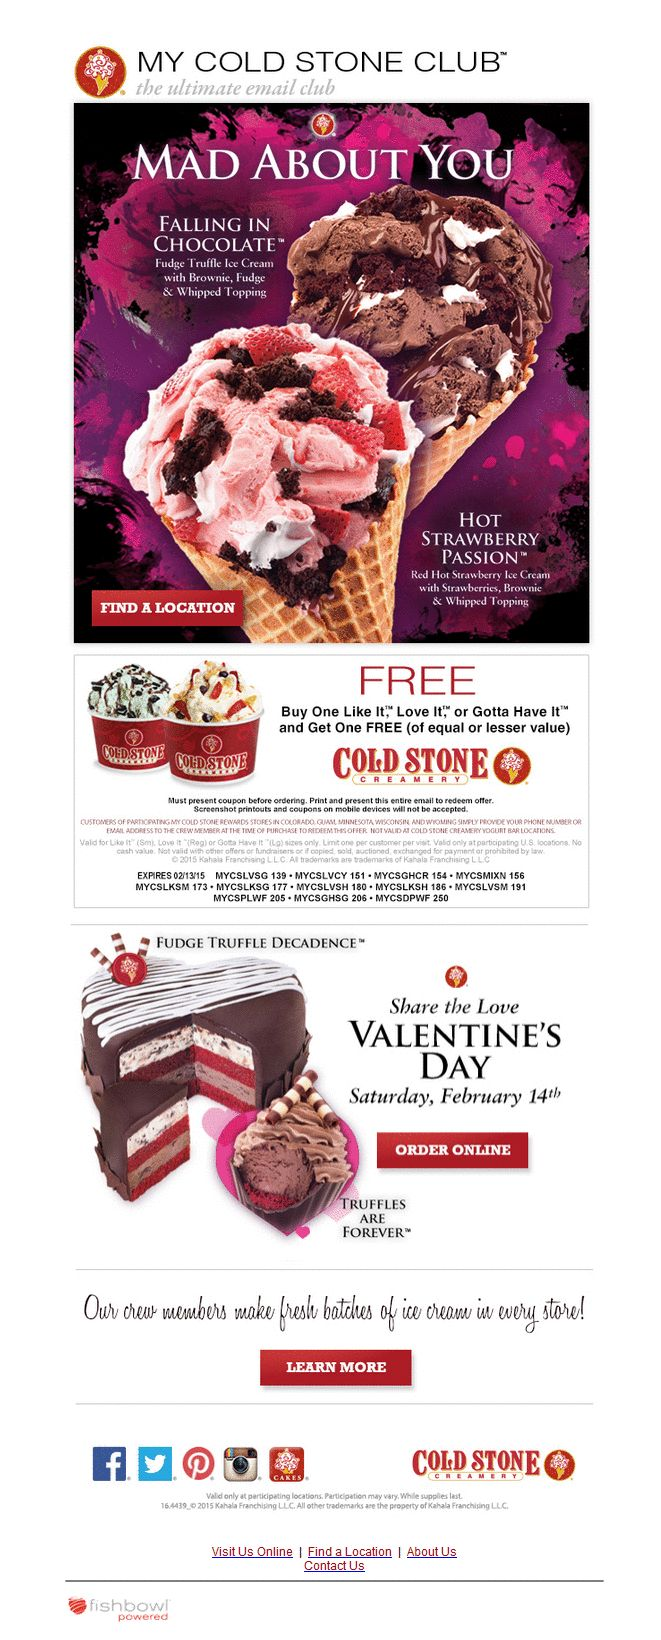 Buy one, get one FREE Cold Stone ice cream coupon!